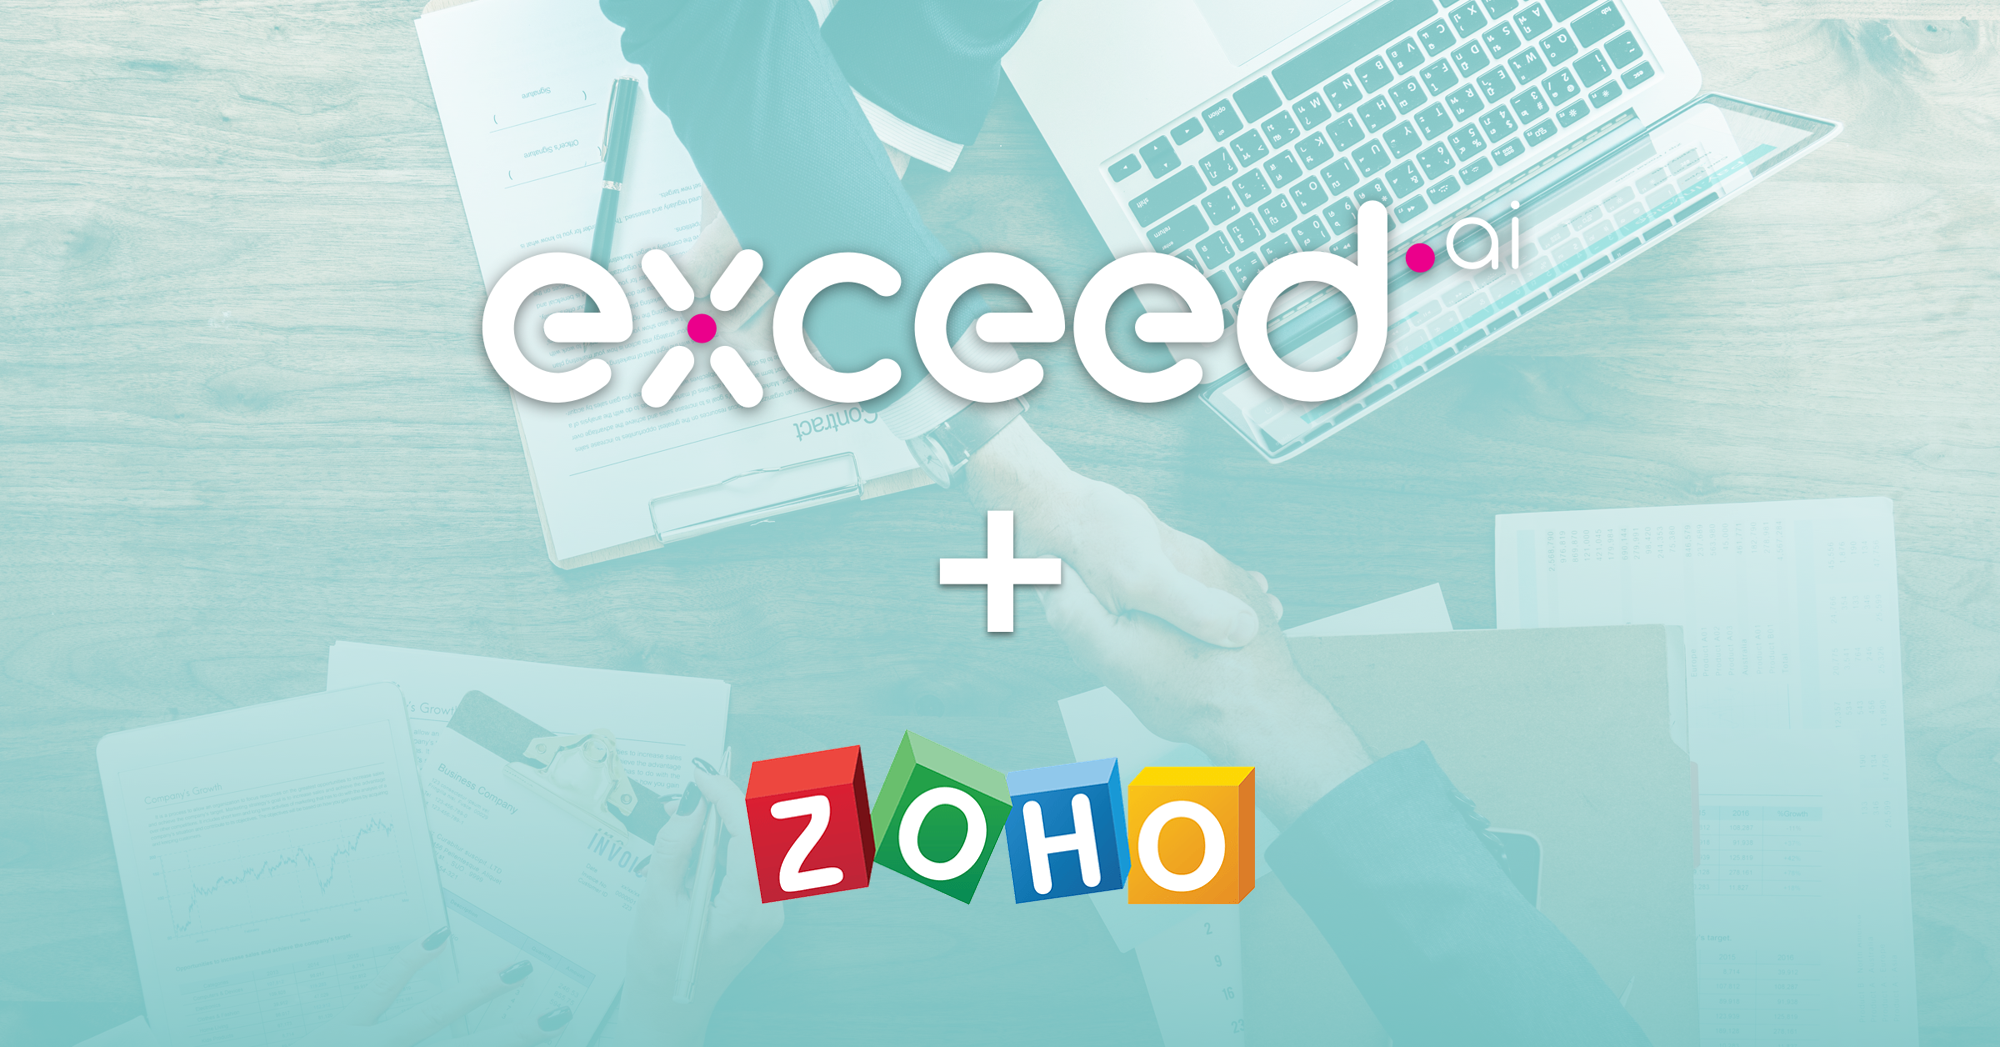 exceed+zoho